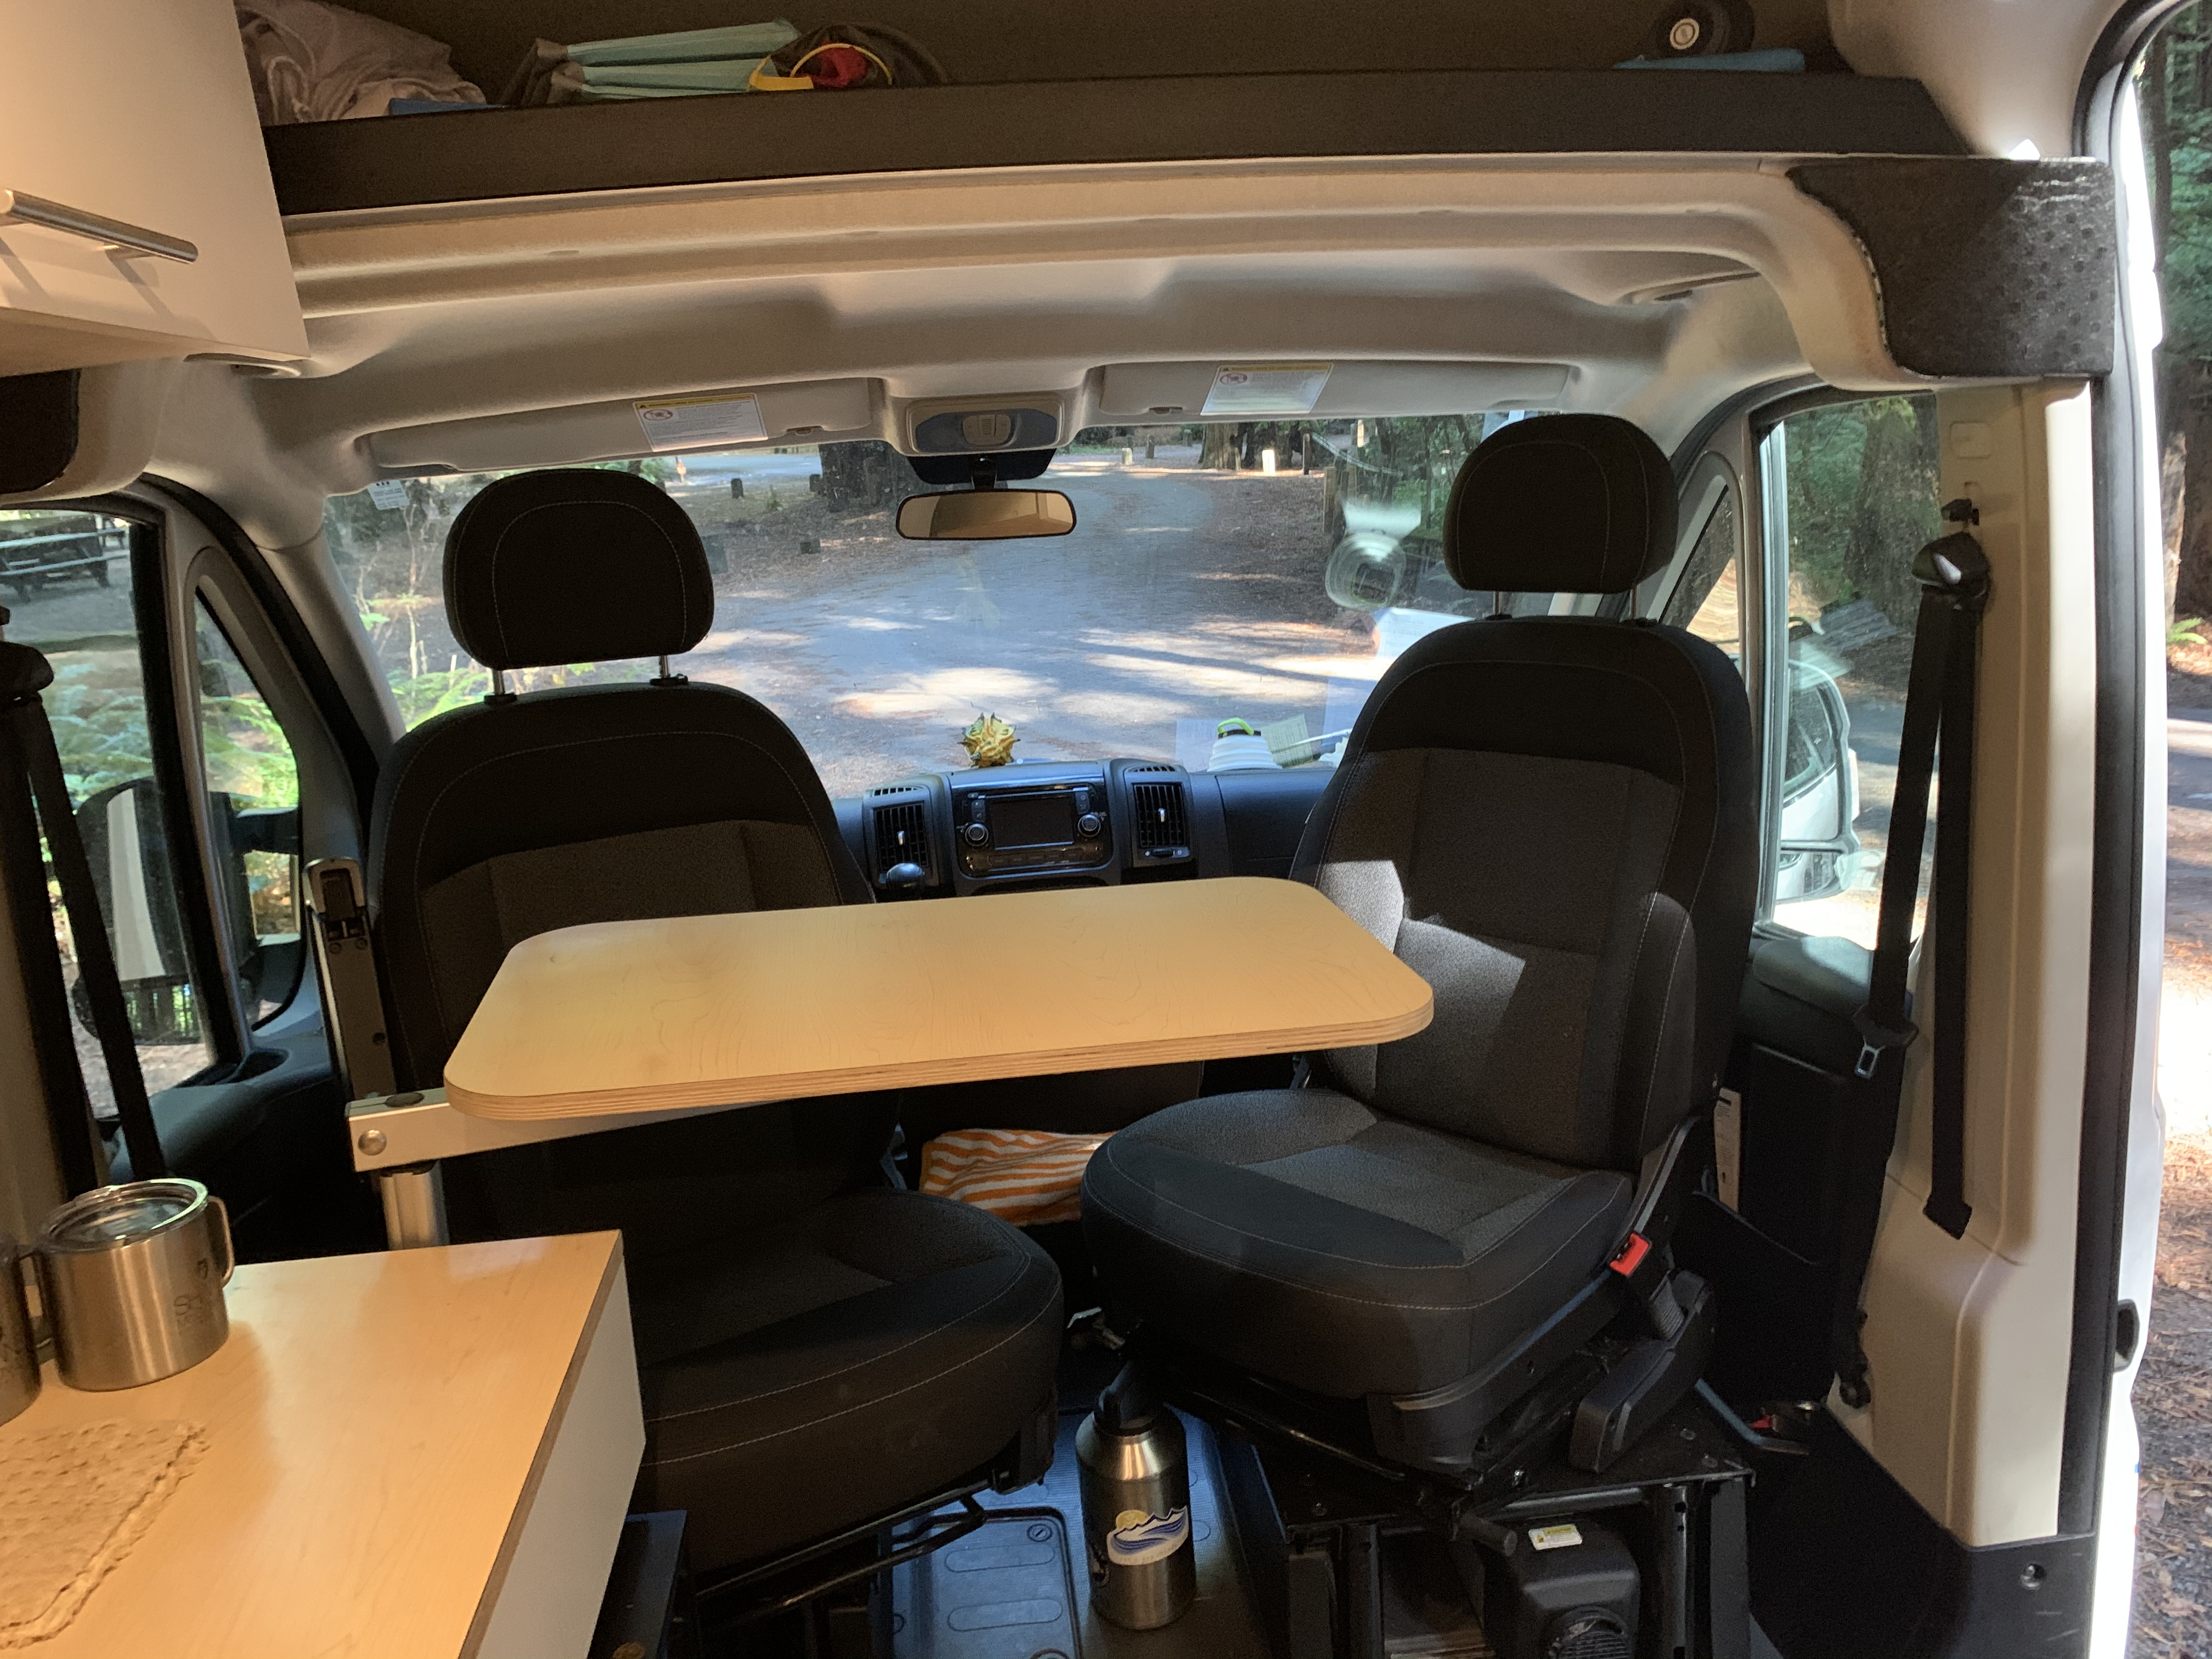 Swivel table is great for dining, extra counter space, or remote working. Captains chairs spin for in-van dining.. Ram Promaster 1500 2017